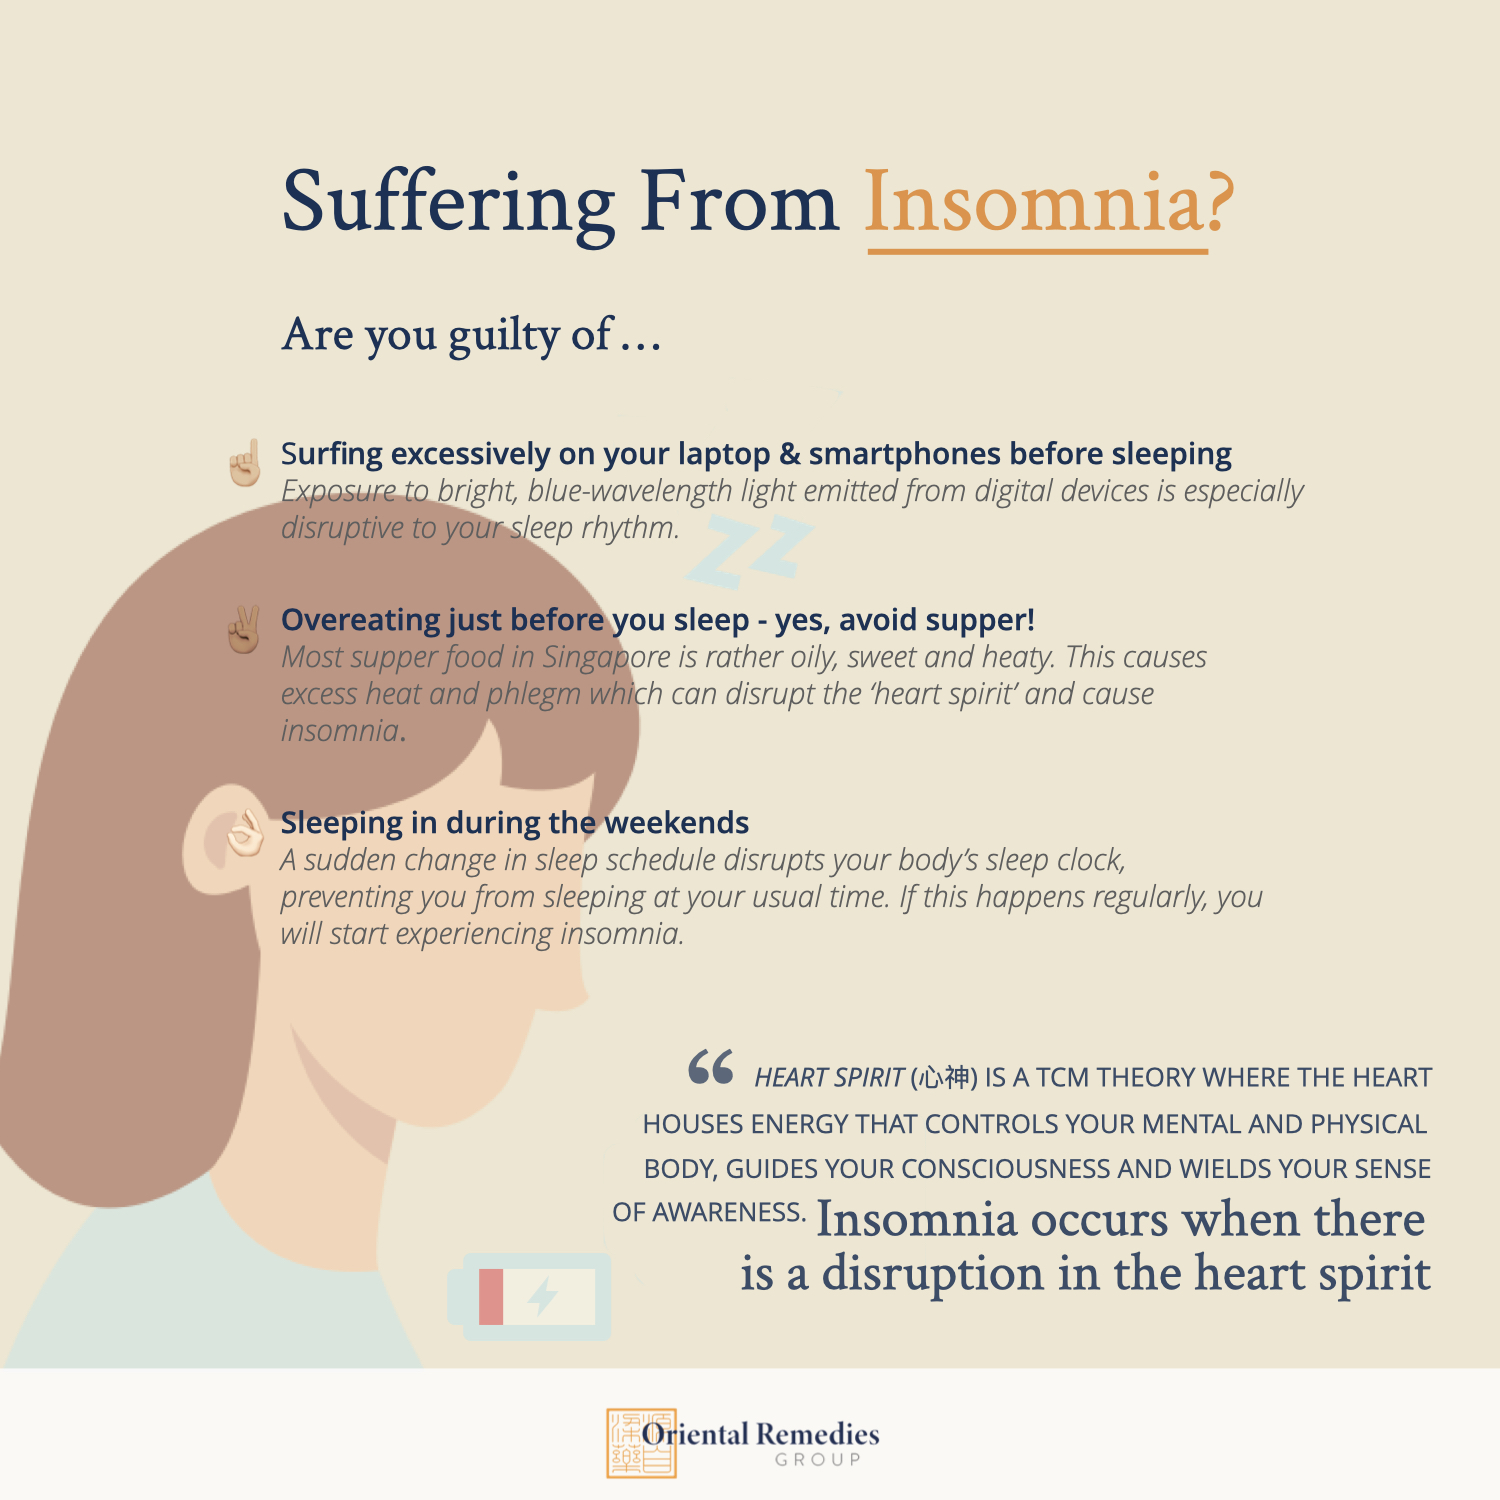 Reasons for insomnia